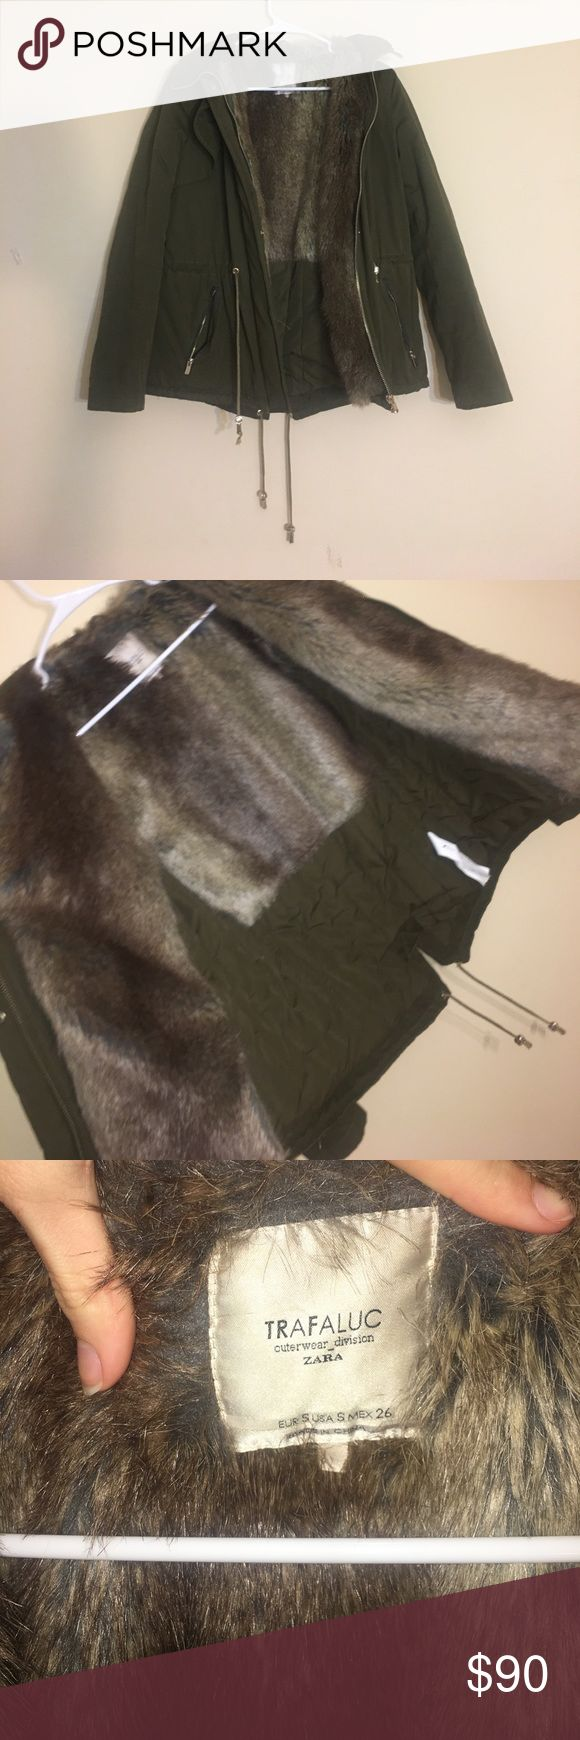 Trafaluc outerwear division zara fur jacket Solid olive green jacket with fur on the inside on the back and by the arms. Great for winter. One pocket on both sides. Zip up jacket. Size US small. Good as new! No stains or rips. Zara Jackets & Coats